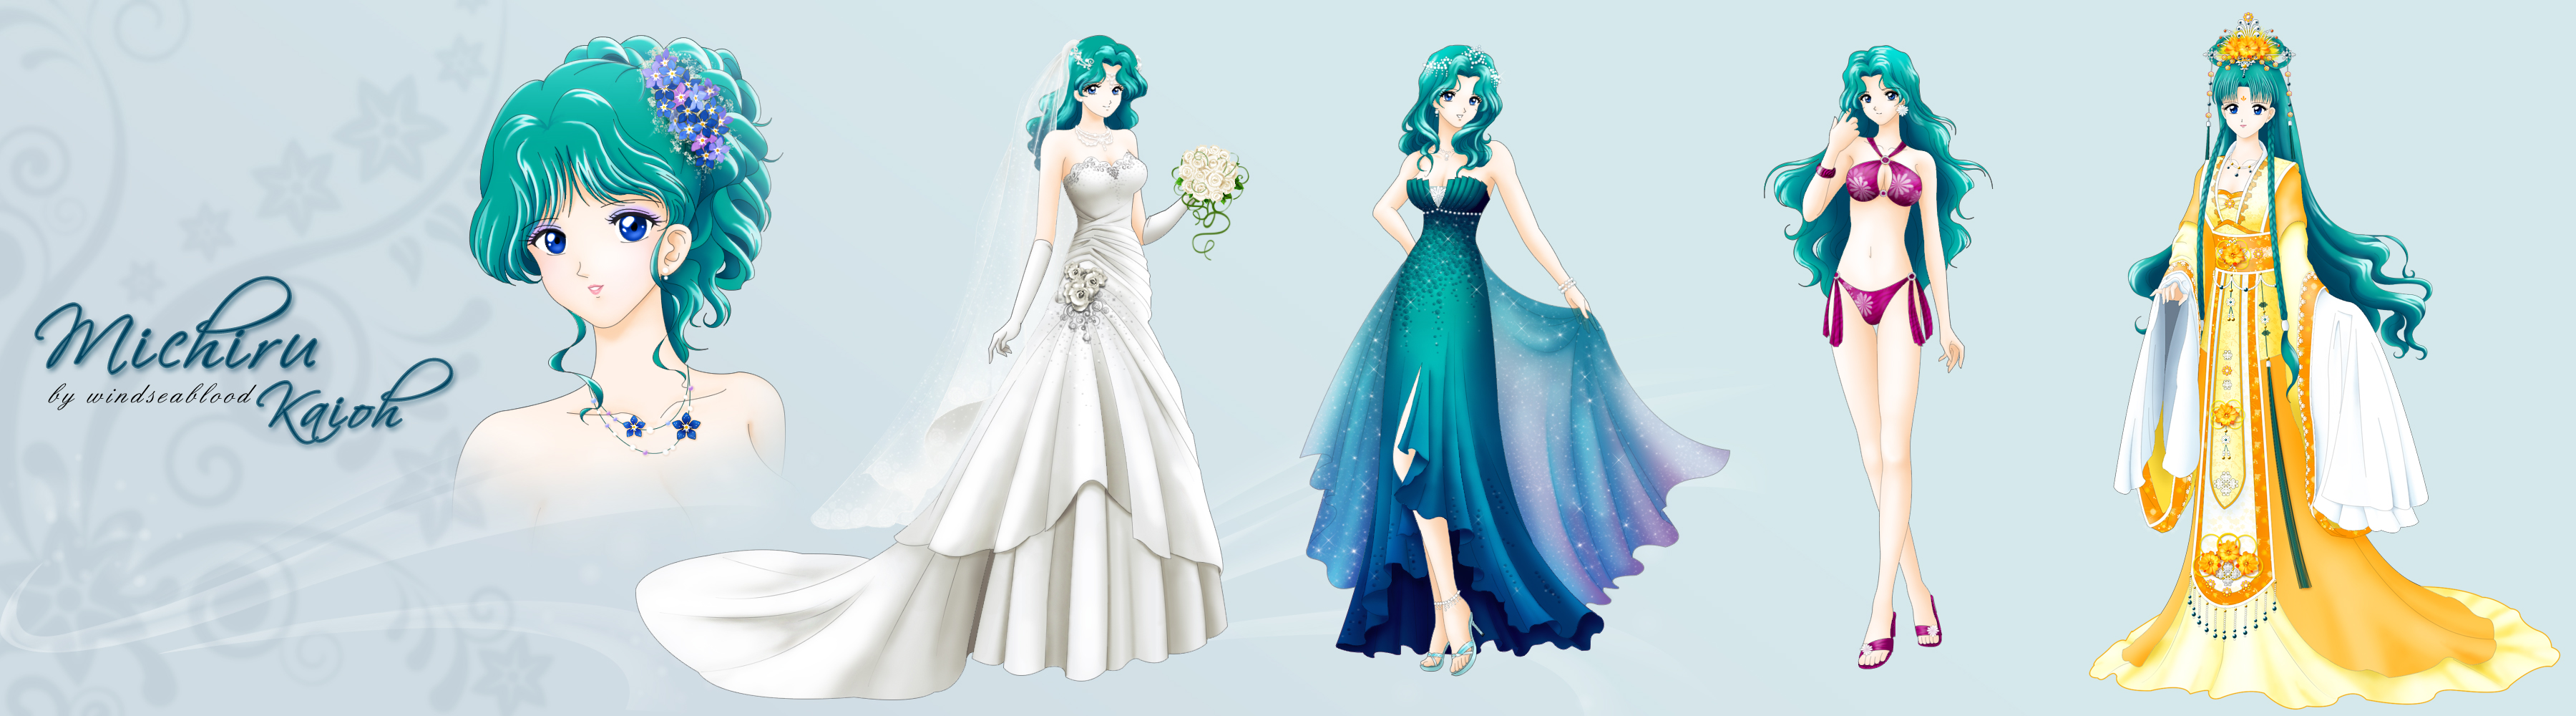 Dorable Sailor Moon Gown Inspiration - Best Evening Gown Inspiration ...